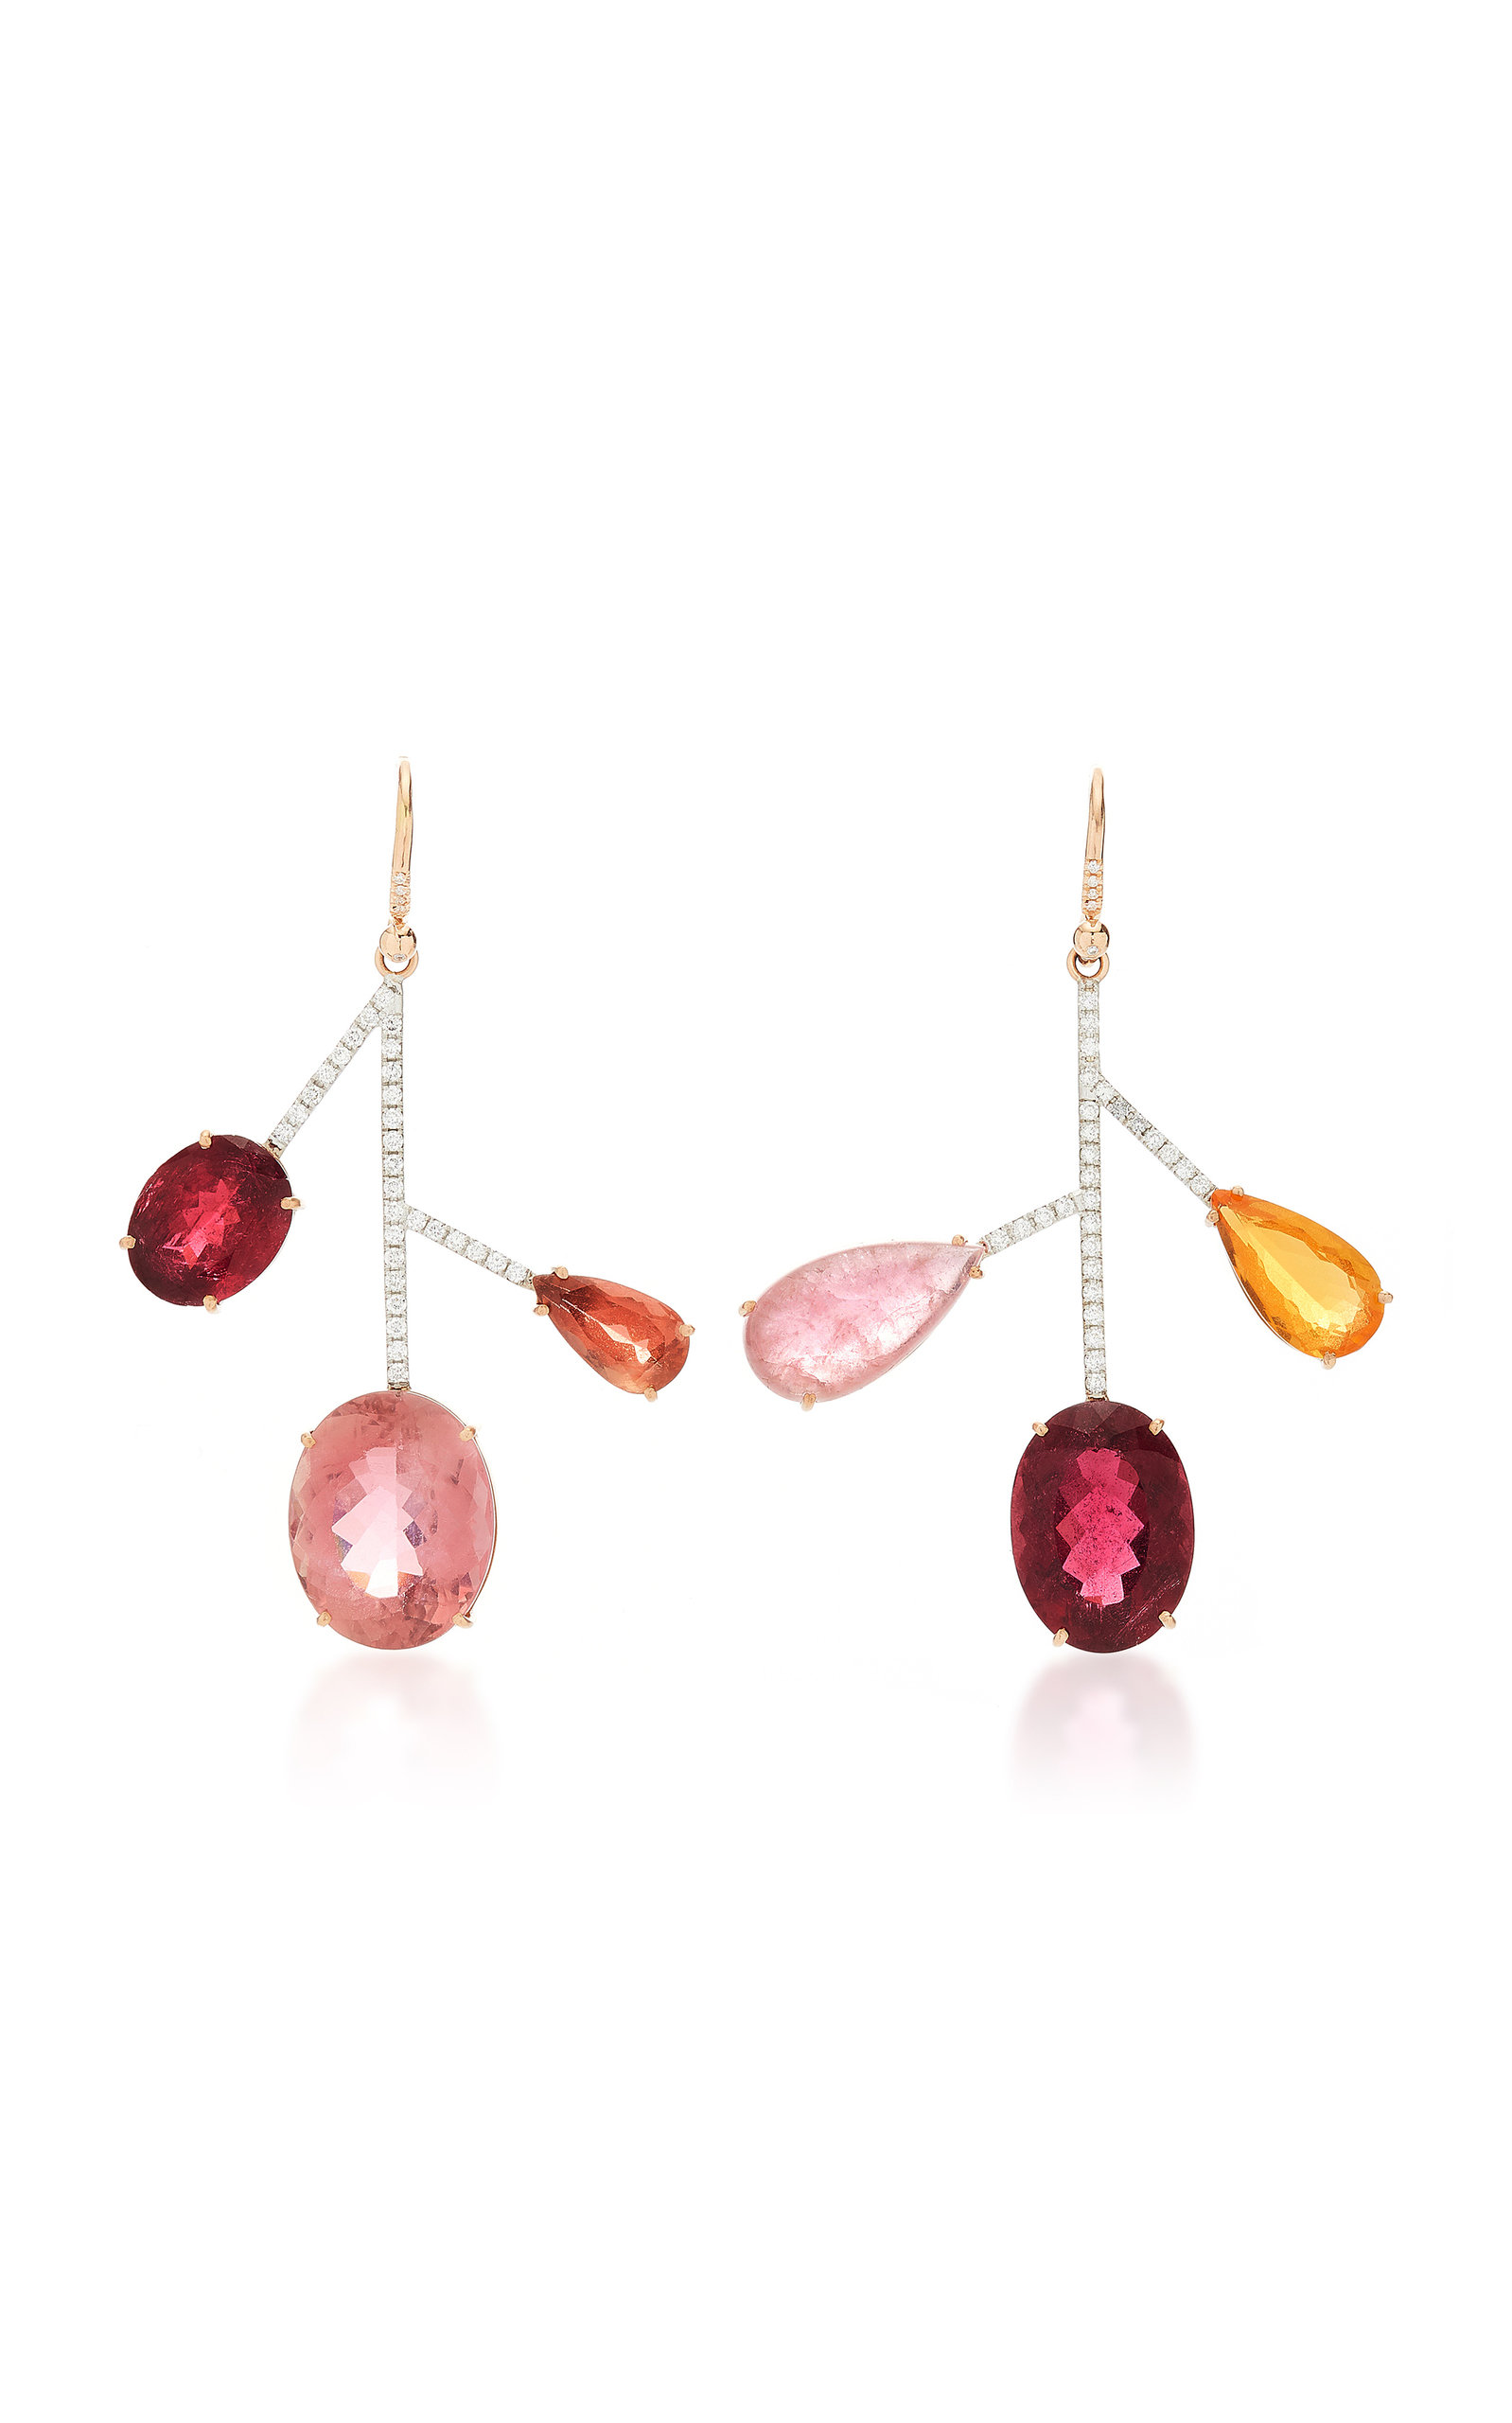 d12823138 One-Of-A-Kind 18K Gold Pink Tourmaline Earrings by Irene Neuwirth ...